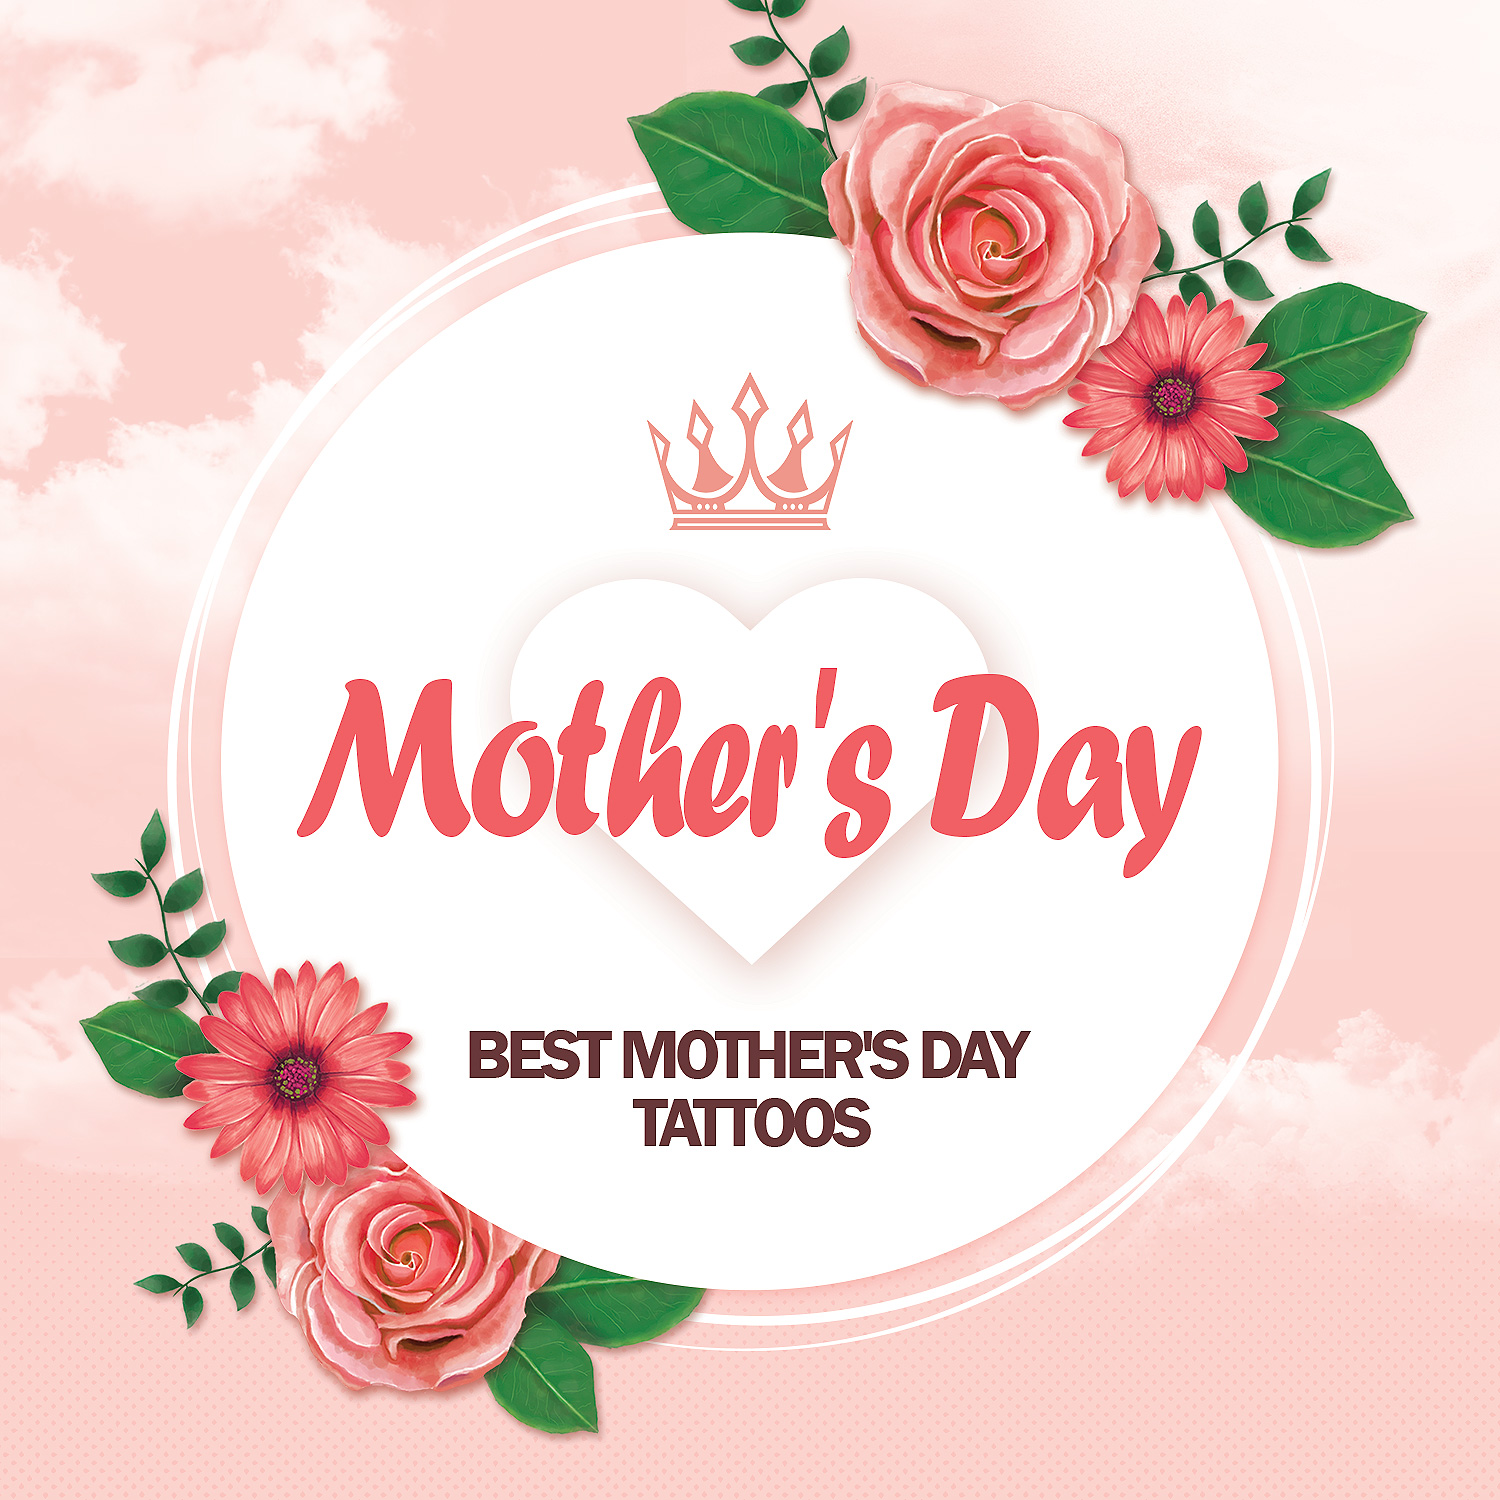 Best Mother's Day Tattoos May 2019